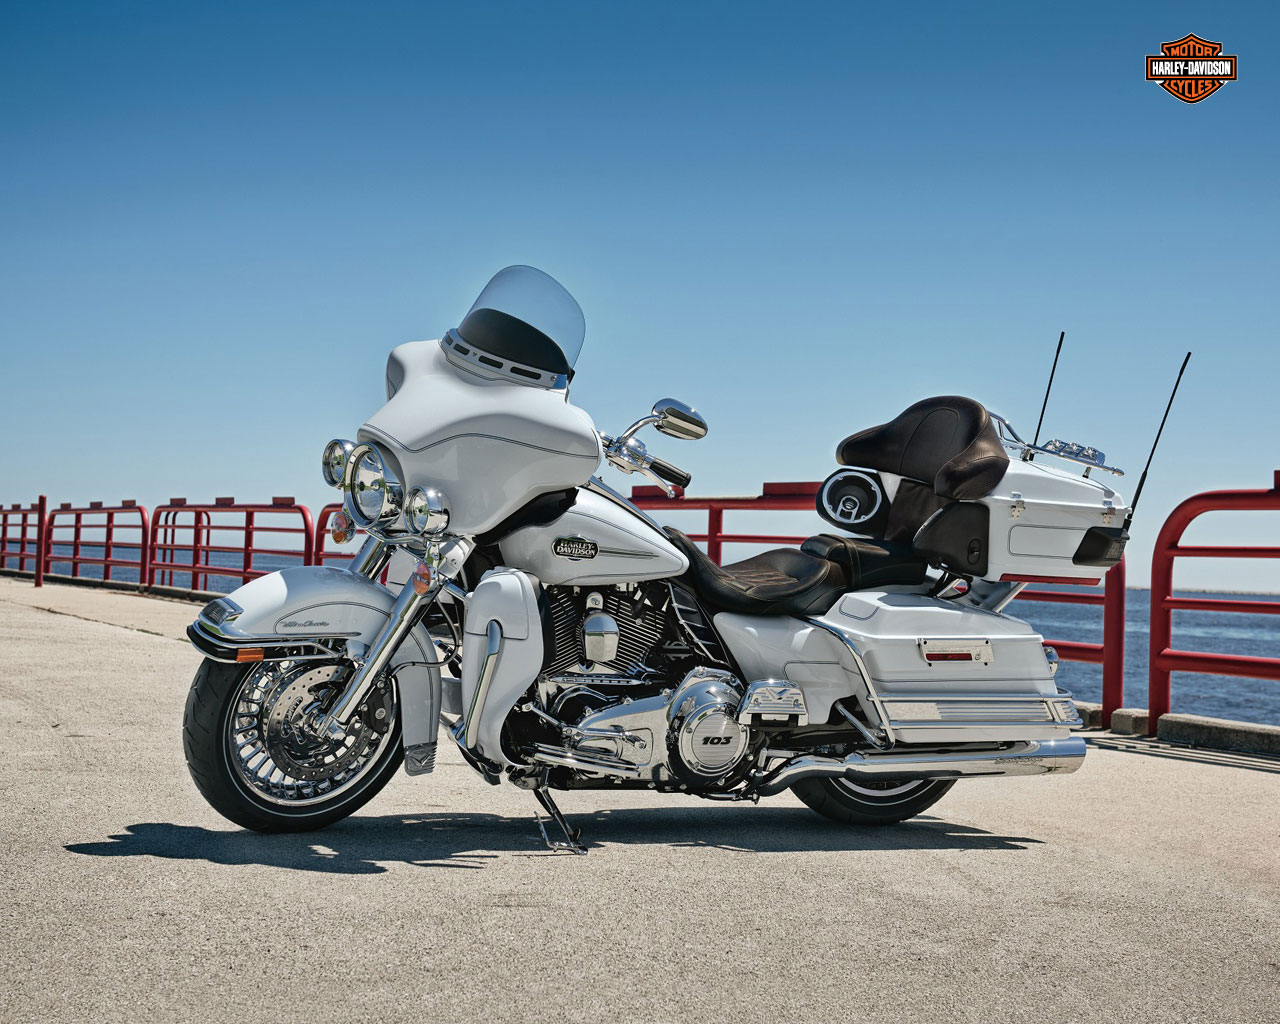 Harley-Davidson FLHTC Electra Glide Classic 2010 pics #19045